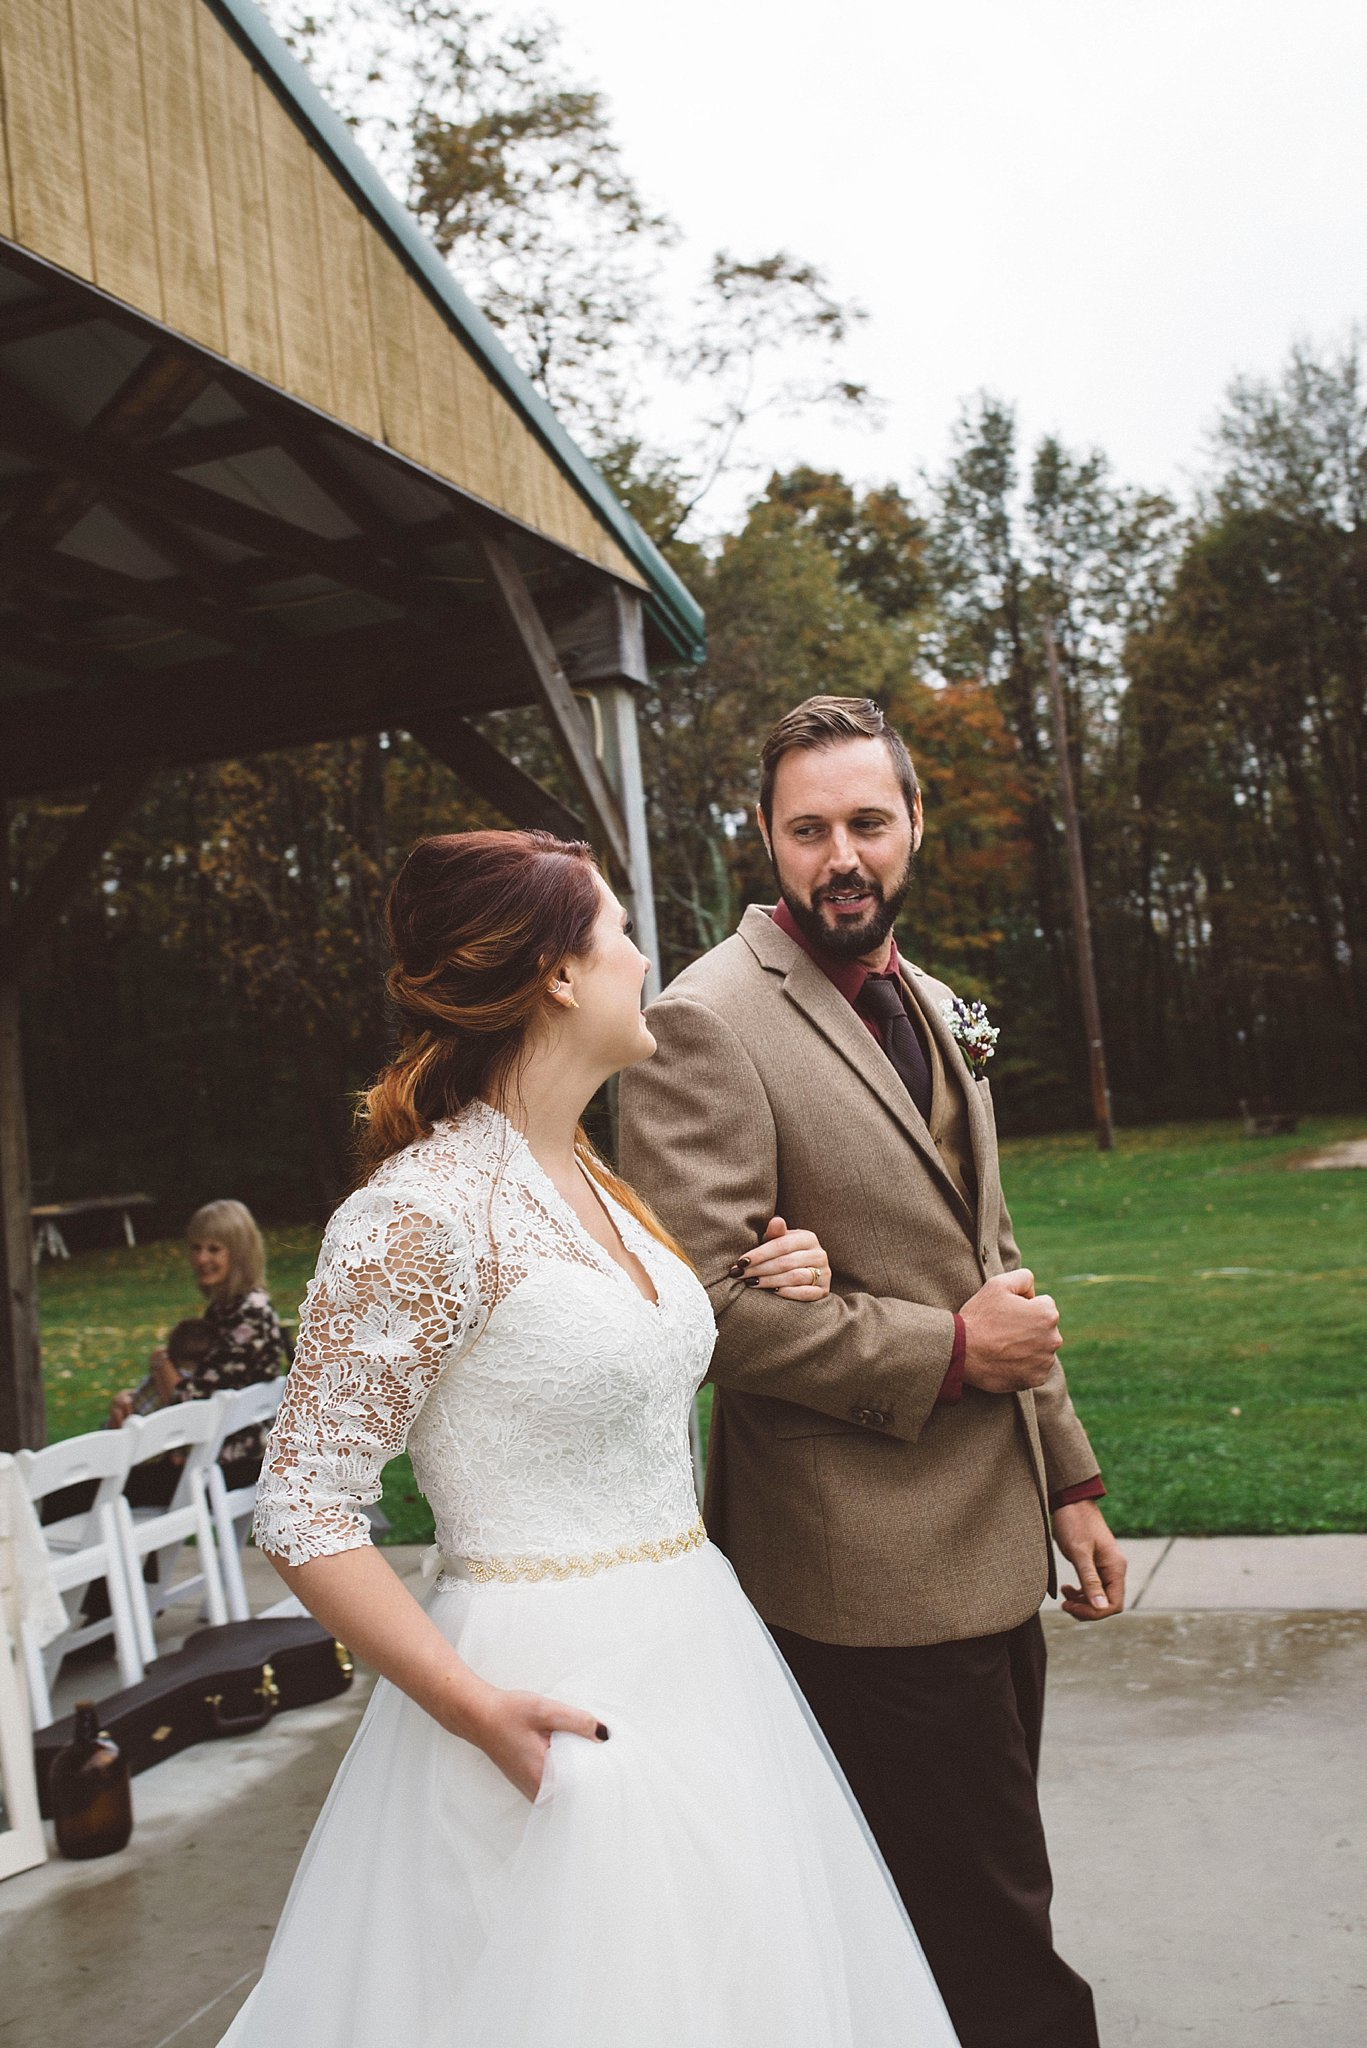 Just married - Pittsburgh wedding